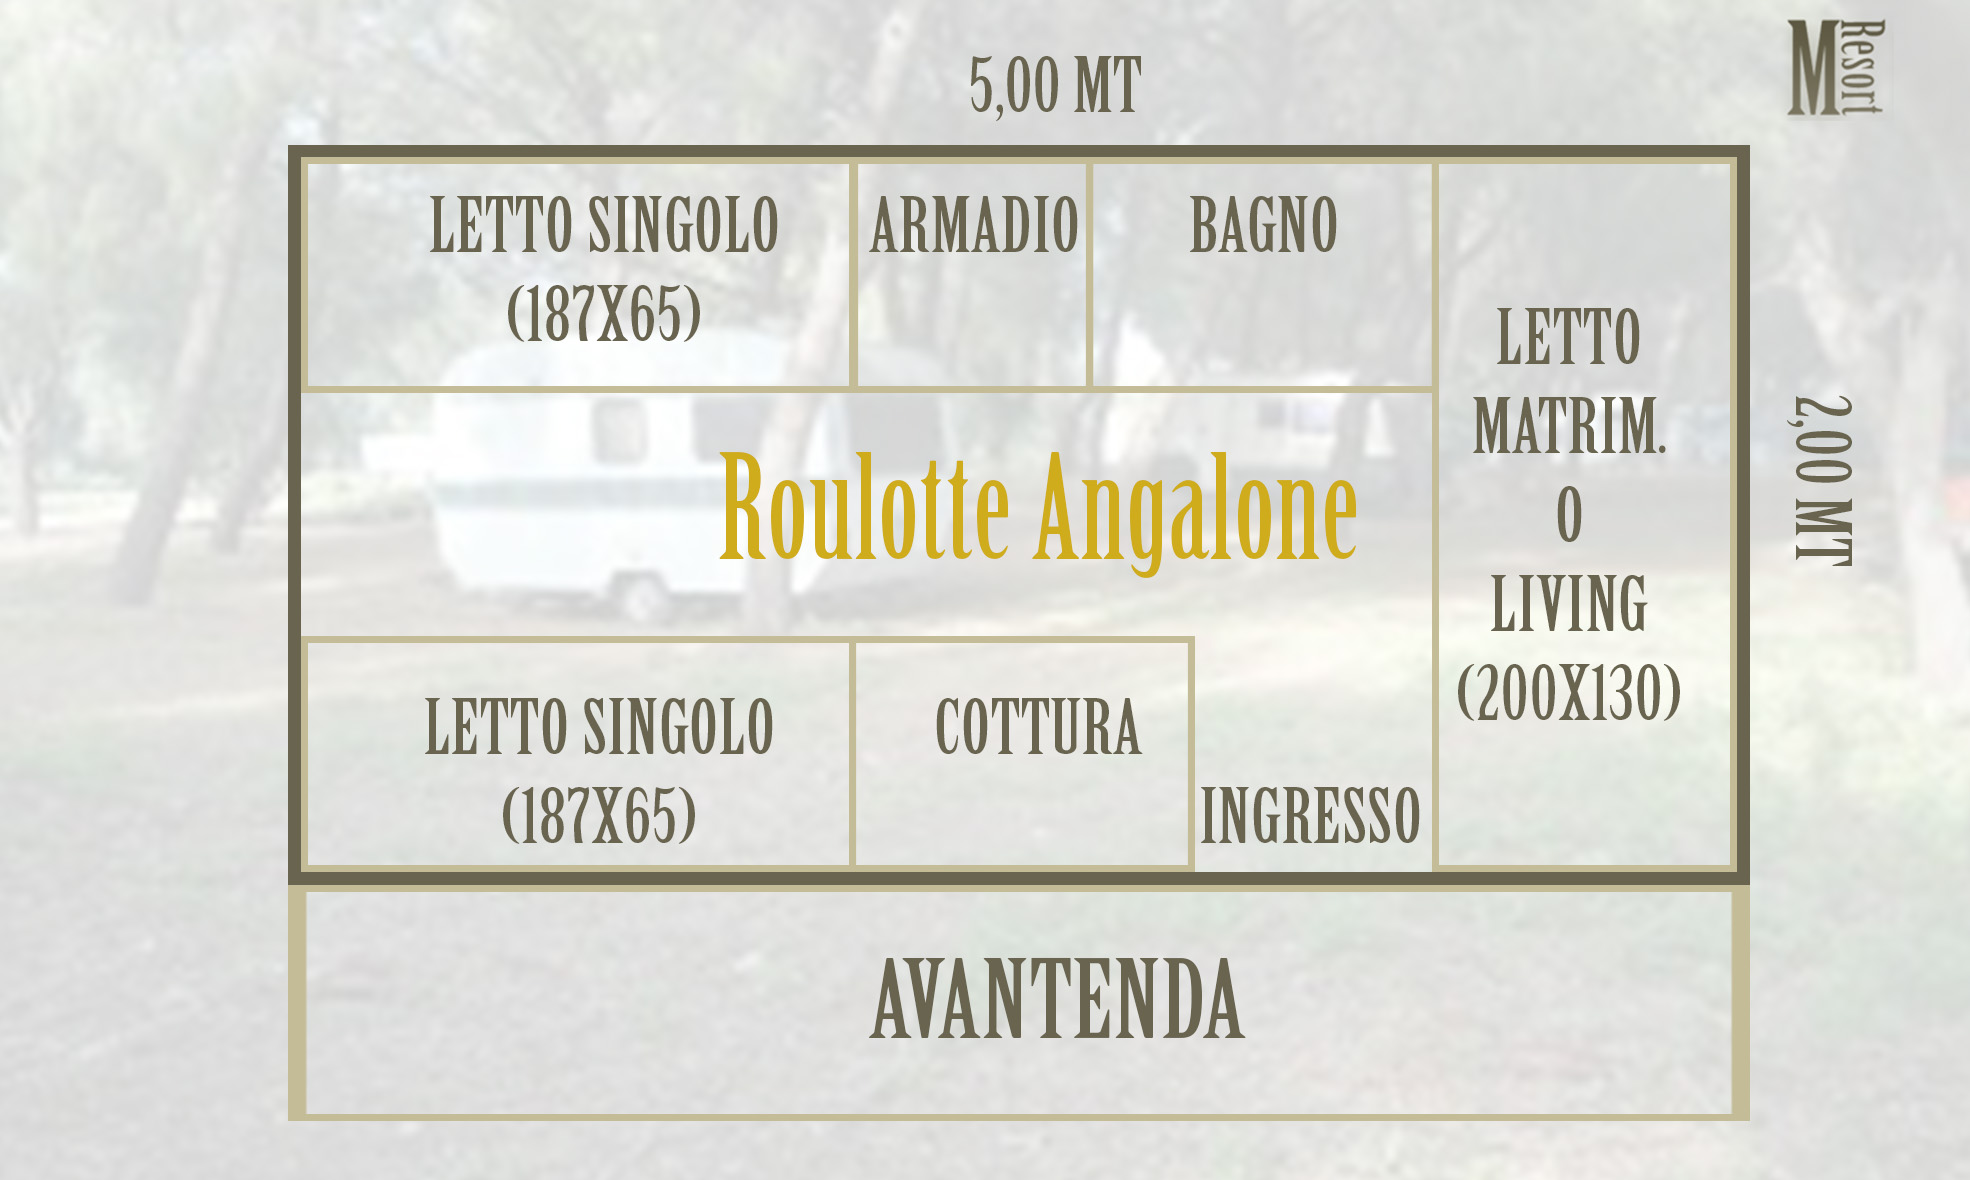 Tipologia roulotte Angalone